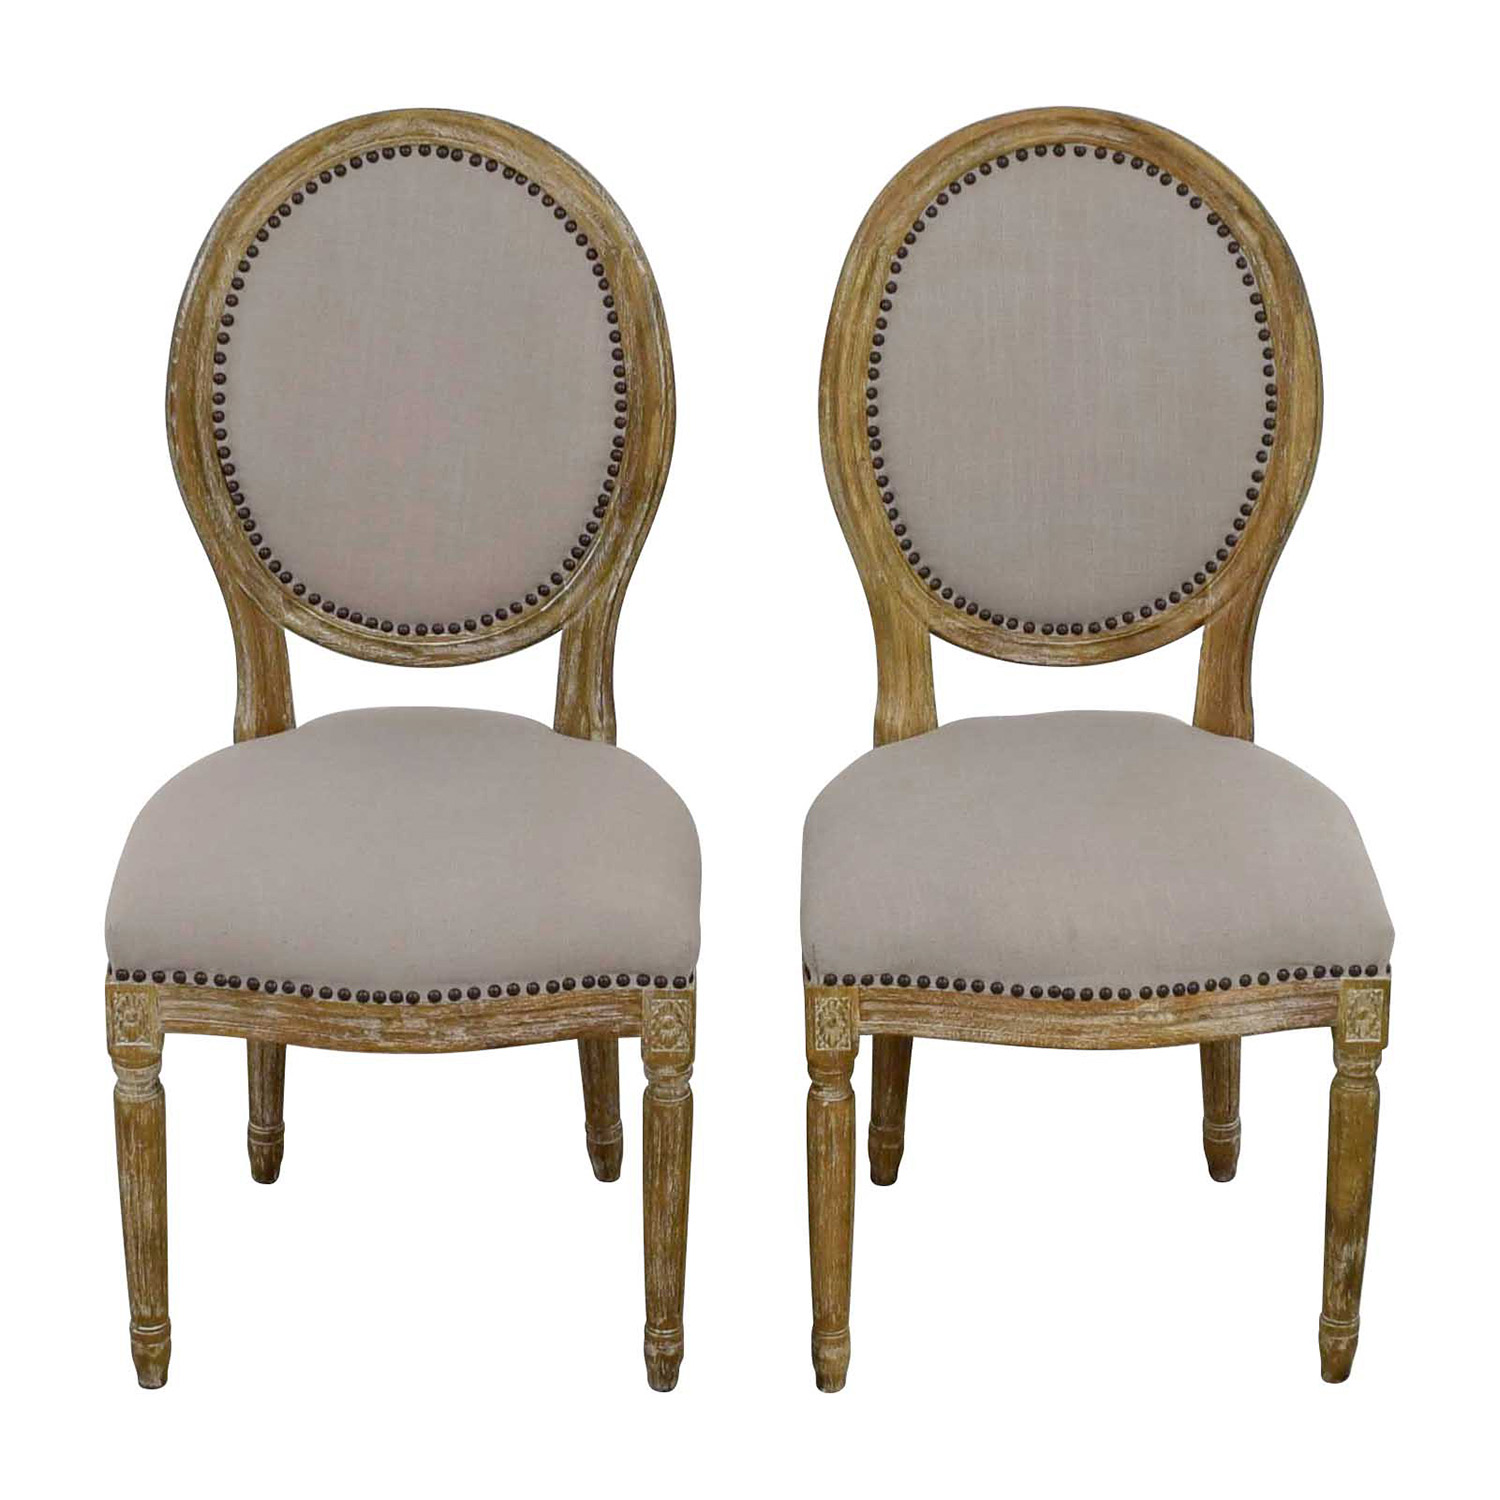 Studio Chairs 49 Off Baxton Studio Baxton Studio Clairette Traditional French Round Chair Chairs